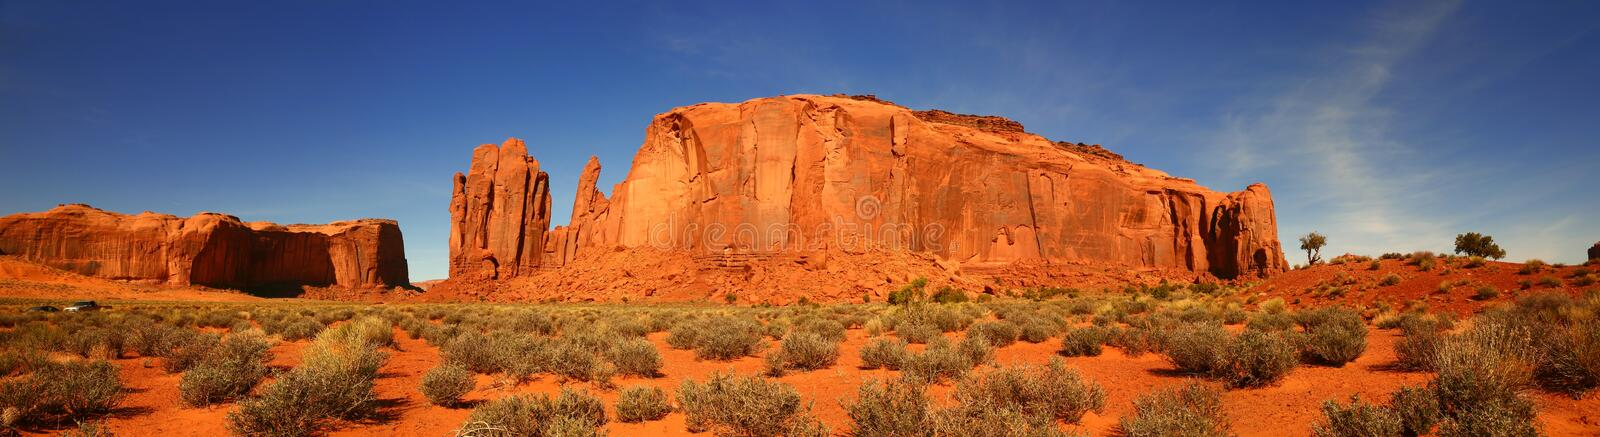 Panorama gigante do Butte no vale do monumento, o Arizona imagens de stock royalty free